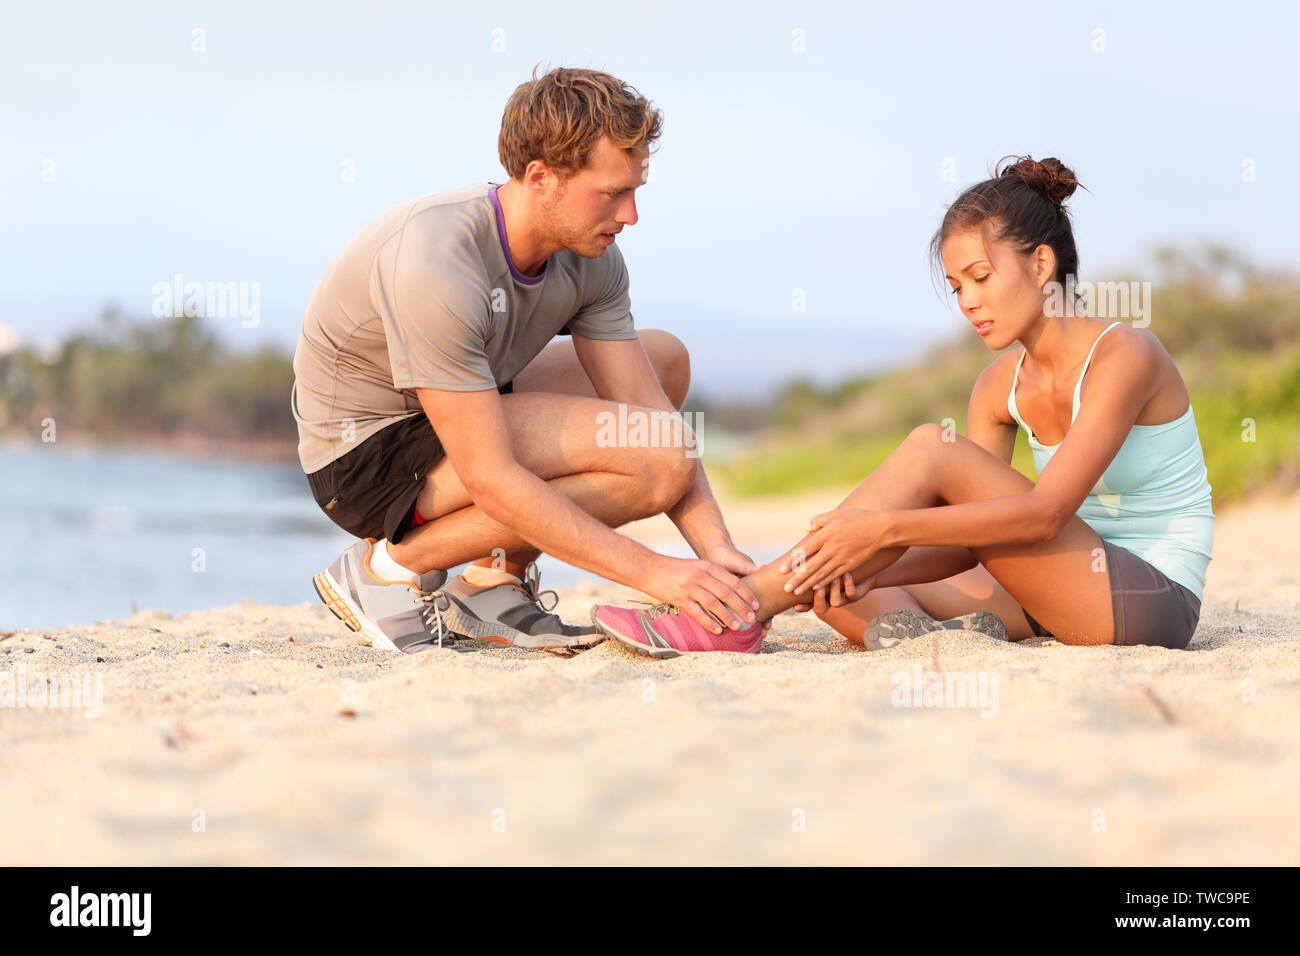 Injury - sports woman with twisted sprained ankle. Asian fitness female model sitting on beach sand getting help from Caucasian male touching her ankle. Stock Photo